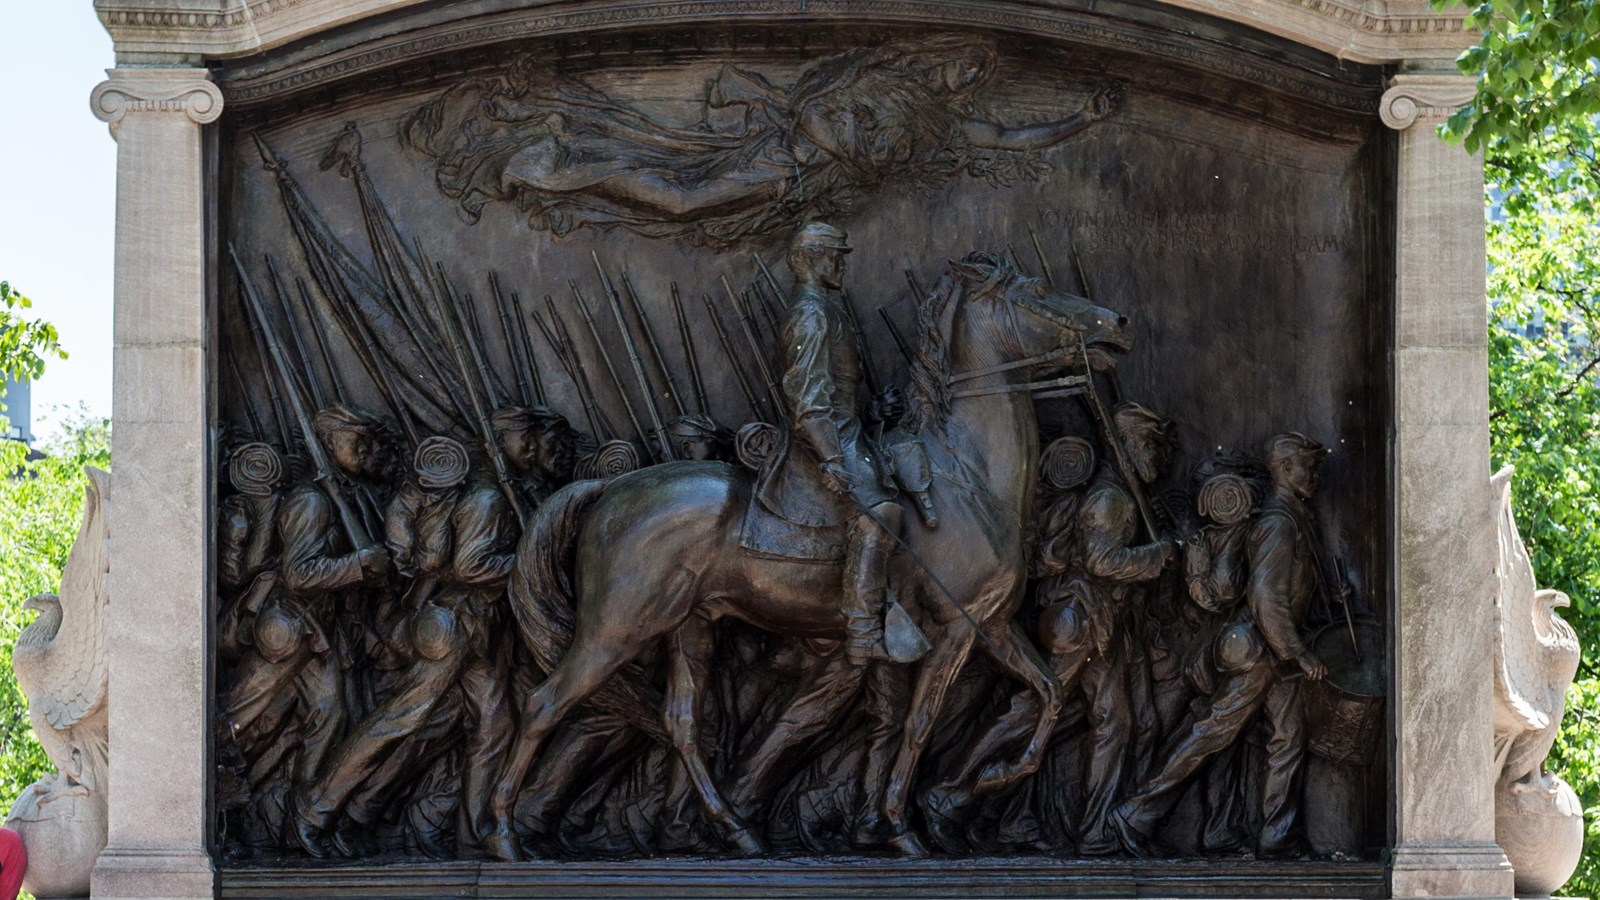 Monument of a man on a horse with multiple soldiers marching around him.